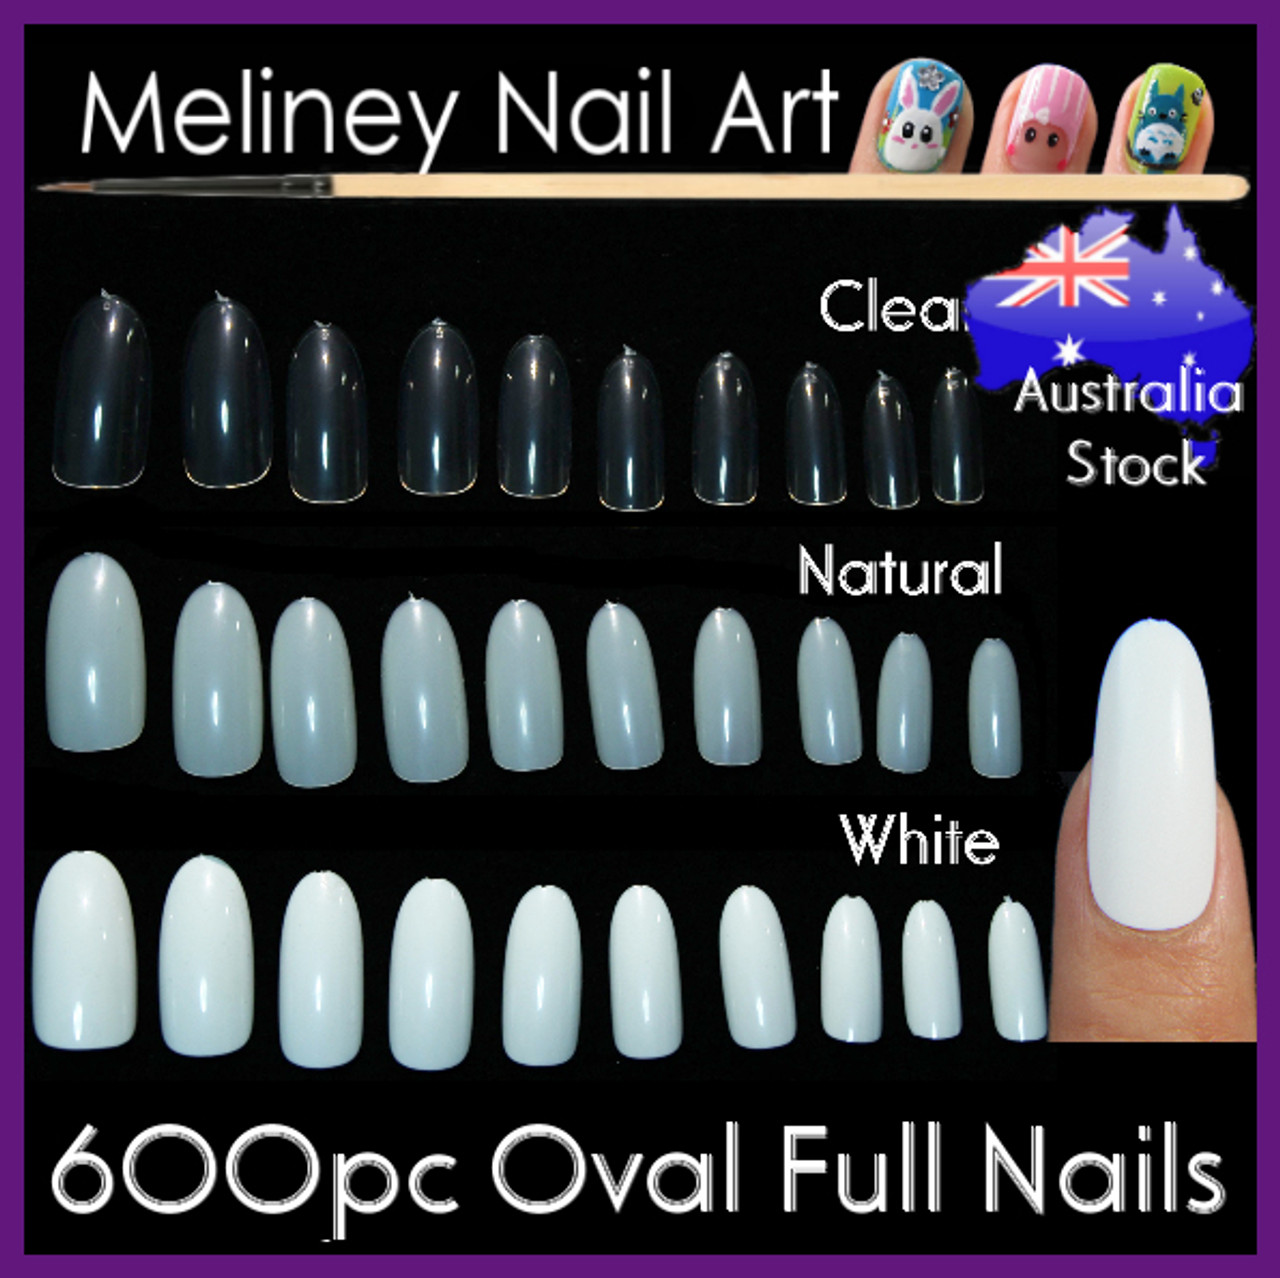 600pc Oval Full Nails. False Artificial Round Nails